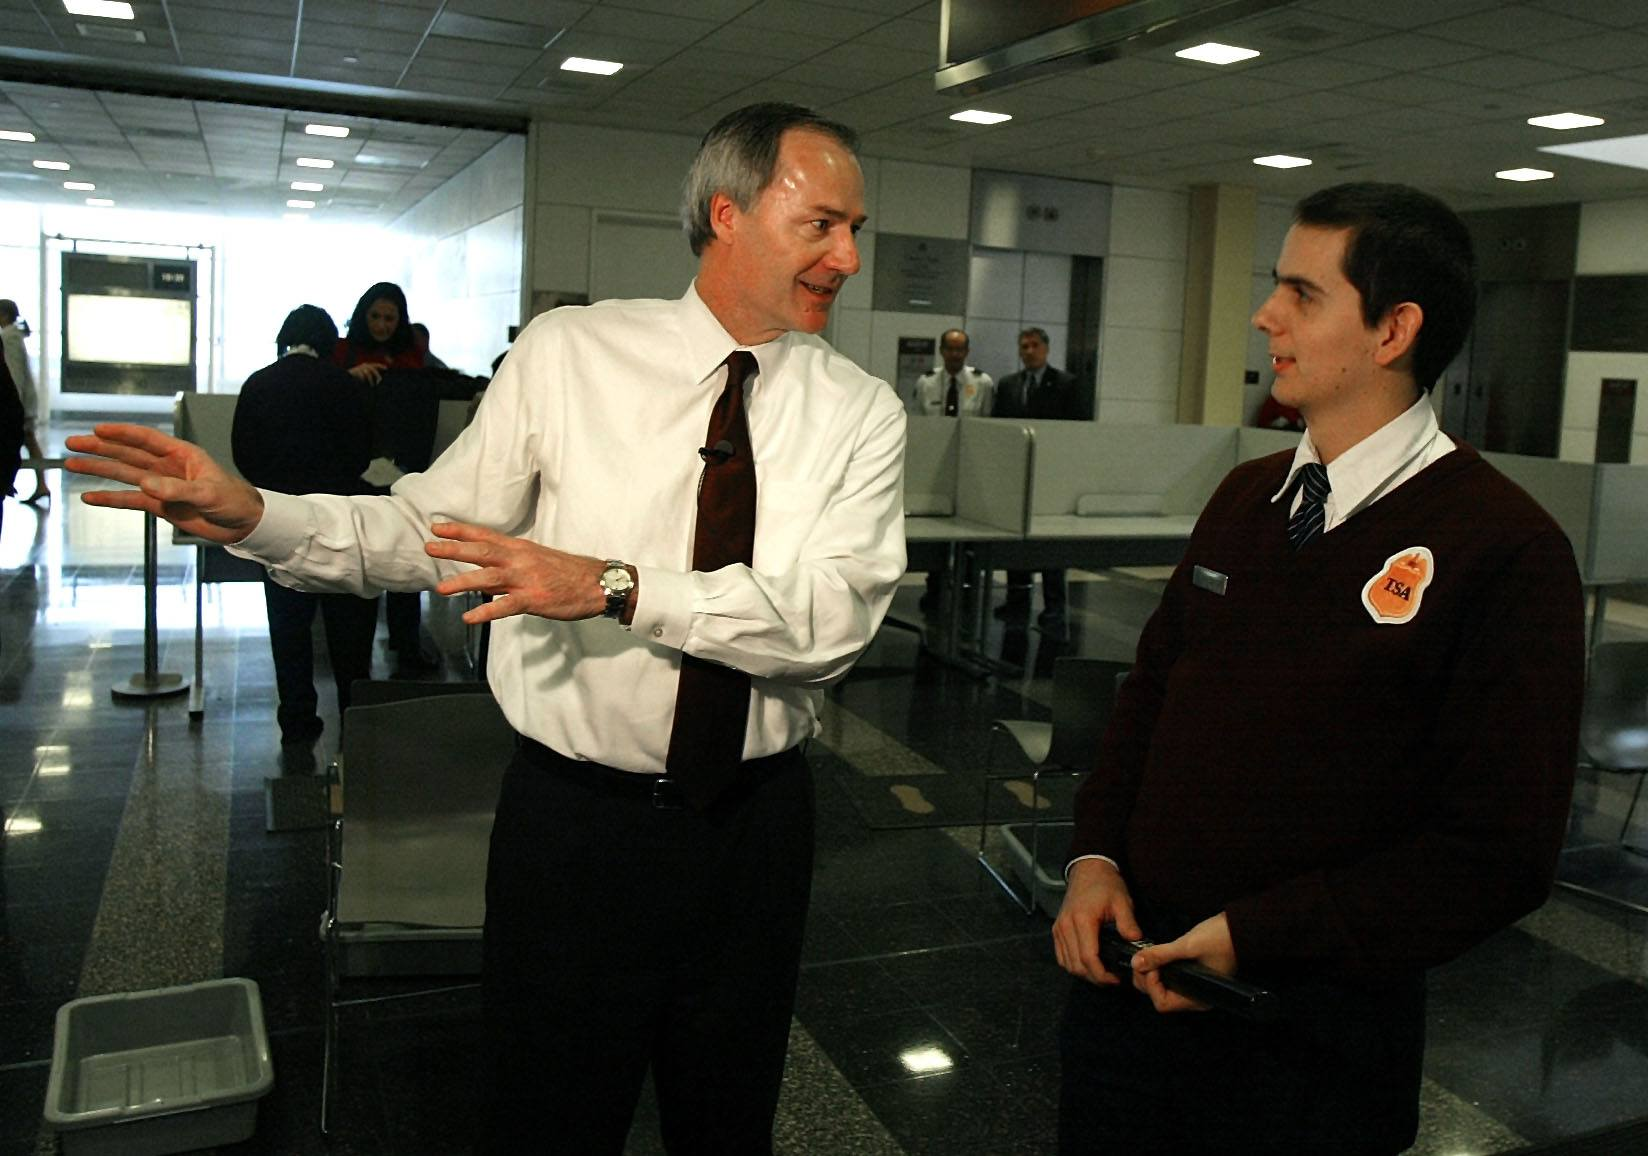 Undersecretary for Border and Transportation Security Asa Hutchinson (L) talks to a Transportation Security Administration